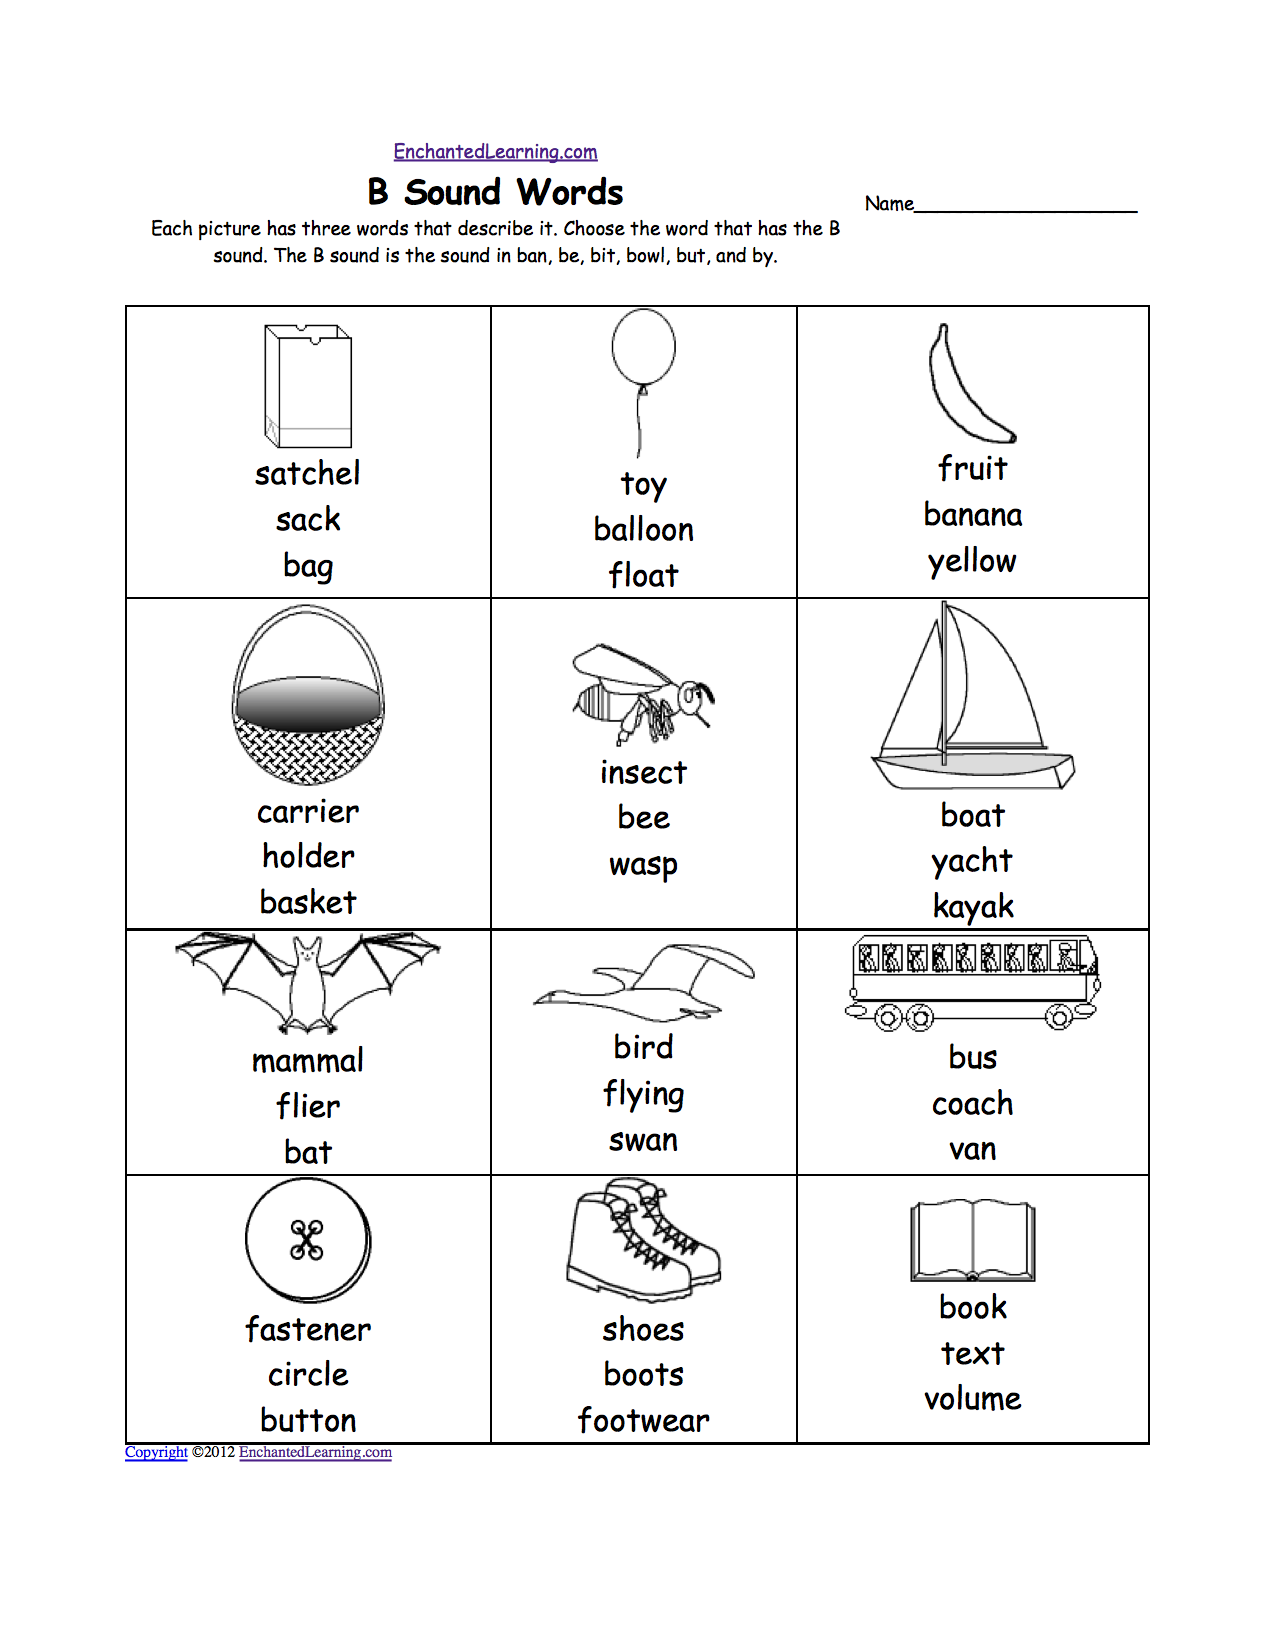 Aldiablosus  Prepossessing Phonics Worksheets Multiple Choice Worksheets To Print  With Licious Quotbquot Sound Phonics Worksheet Multiple Choice Each Picture Has Three Words That Describe It Choose The Word That Has A Quotbquot Sound The Quotbquot Sound Is The Sound  With Beauteous Weather Worksheets First Grade Also Child Support Worksheet B In Addition Goal Setting Worksheet High School And Th Grade Printable Math Worksheets As Well As Clock Practice Worksheets Additionally Orchestra Worksheets From Enchantedlearningcom With Aldiablosus  Licious Phonics Worksheets Multiple Choice Worksheets To Print  With Beauteous Quotbquot Sound Phonics Worksheet Multiple Choice Each Picture Has Three Words That Describe It Choose The Word That Has A Quotbquot Sound The Quotbquot Sound Is The Sound  And Prepossessing Weather Worksheets First Grade Also Child Support Worksheet B In Addition Goal Setting Worksheet High School From Enchantedlearningcom